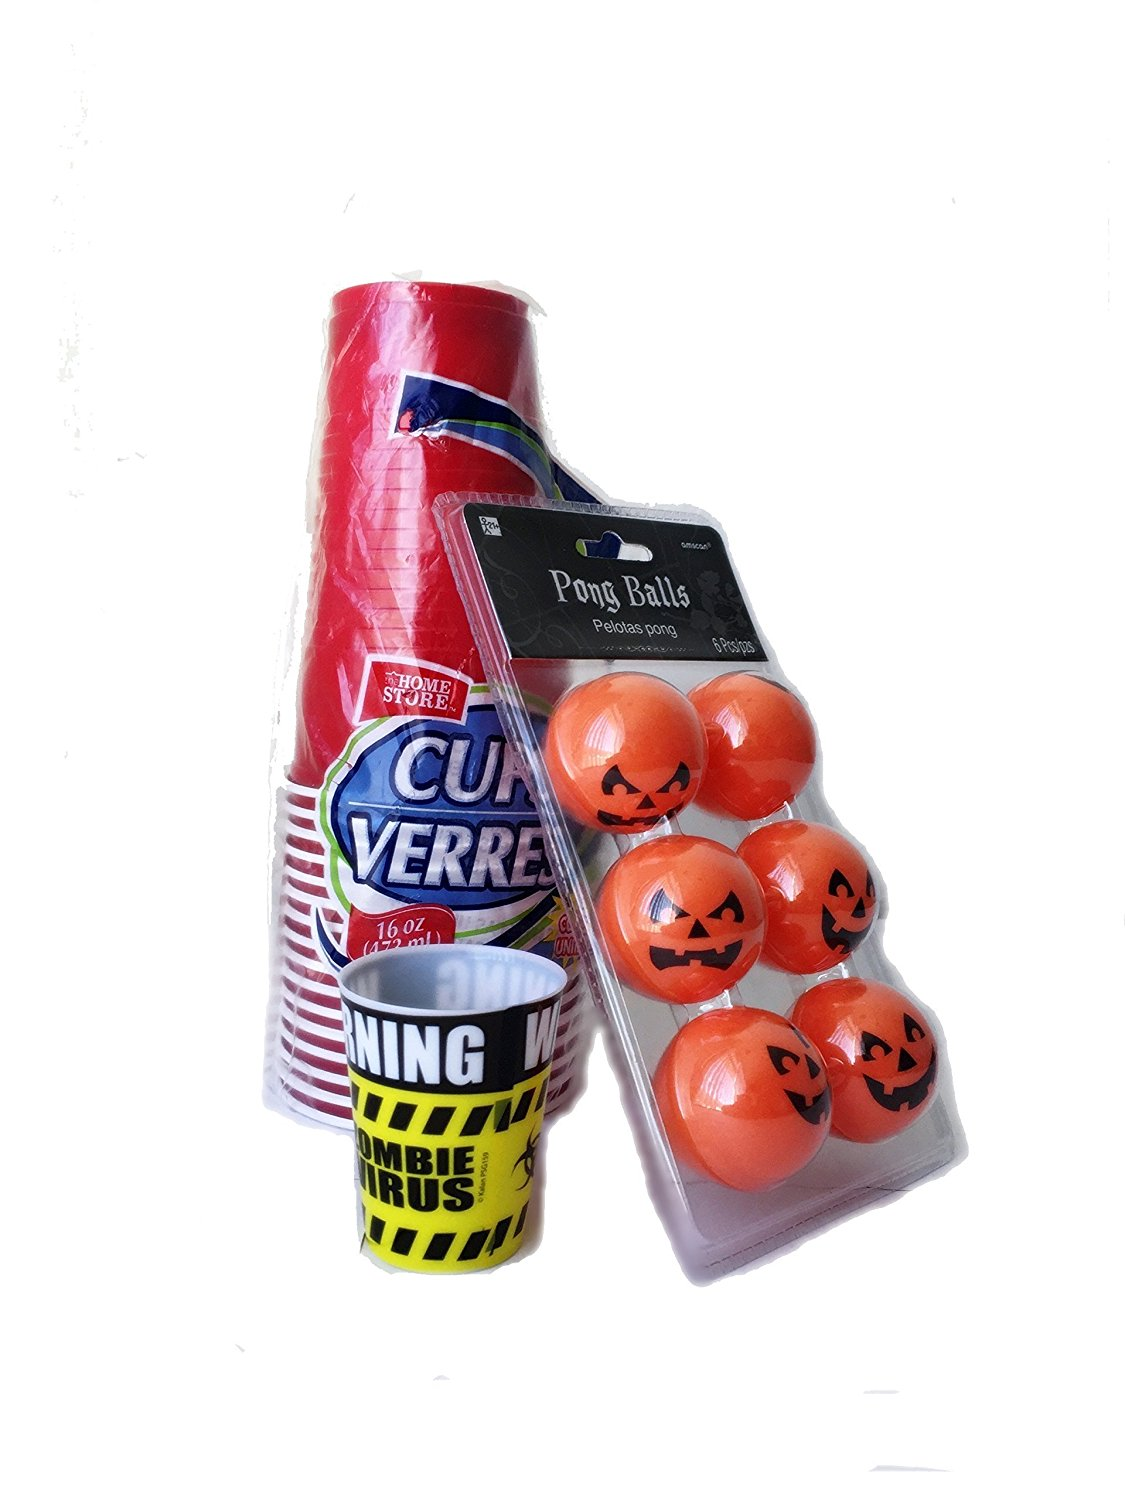 Halloween Beer Pong Table Set Orange Beer Pong Balls Party Bundle With Red Beer Pong Cups and Party Zombie Shot Glass Beer Pong Balls Set Beer Pong Table Supplies Beer Pong Set